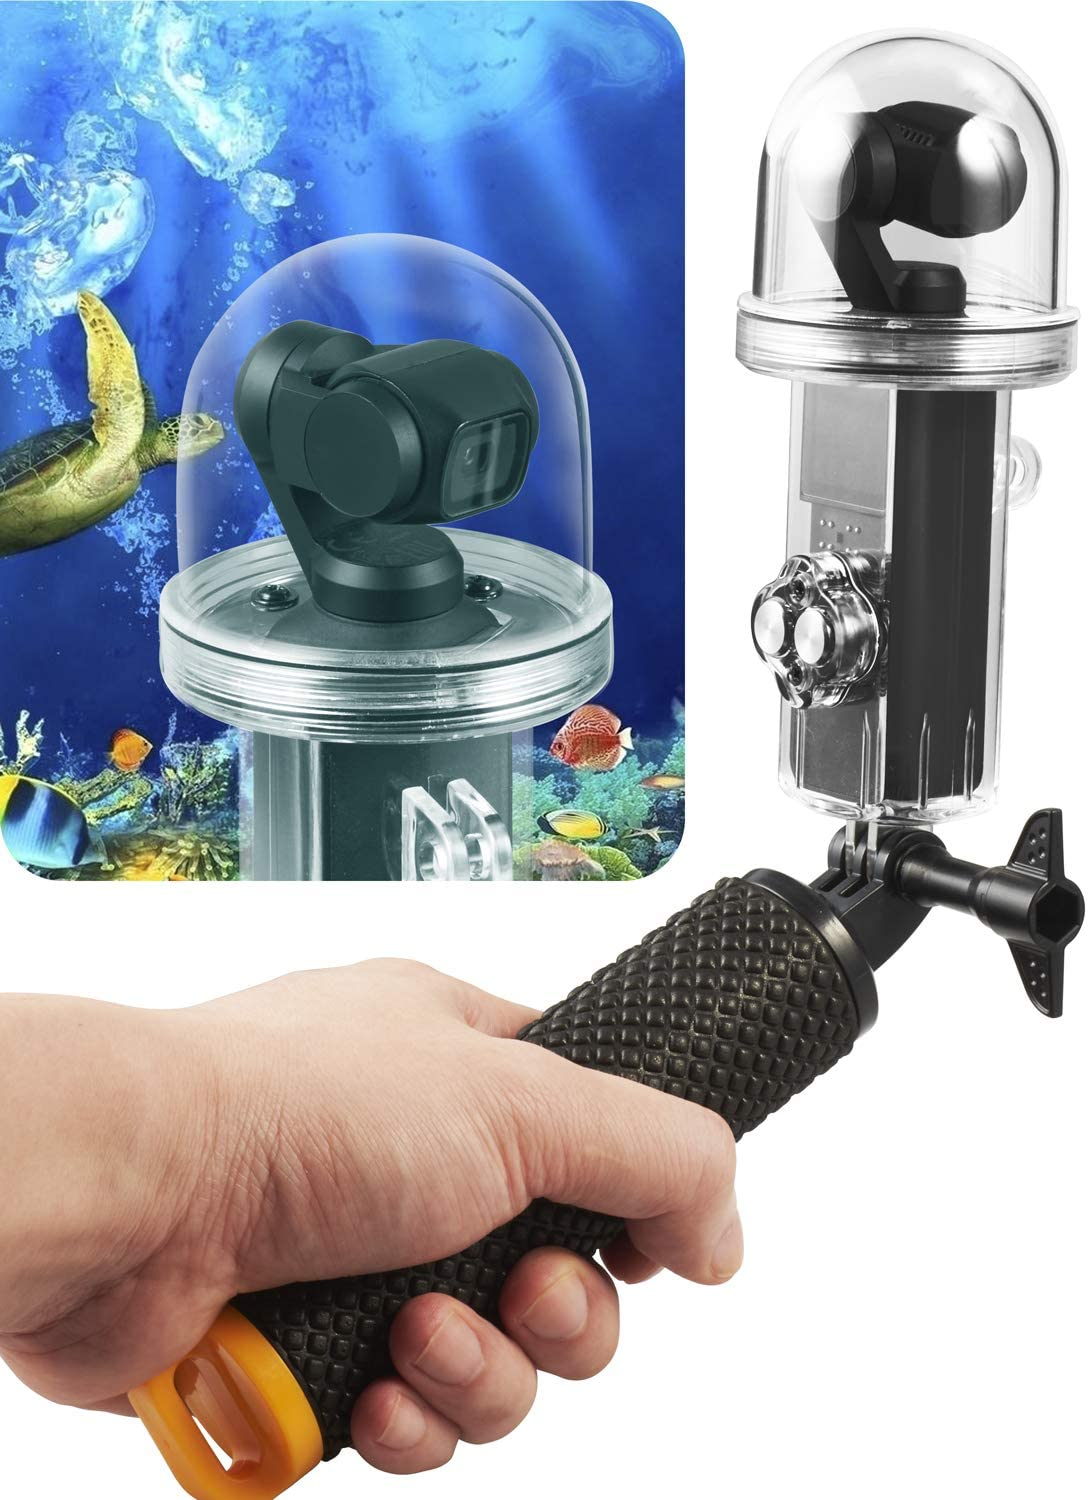 Aboom 50-Meter Underwater Photography Waterproof Case